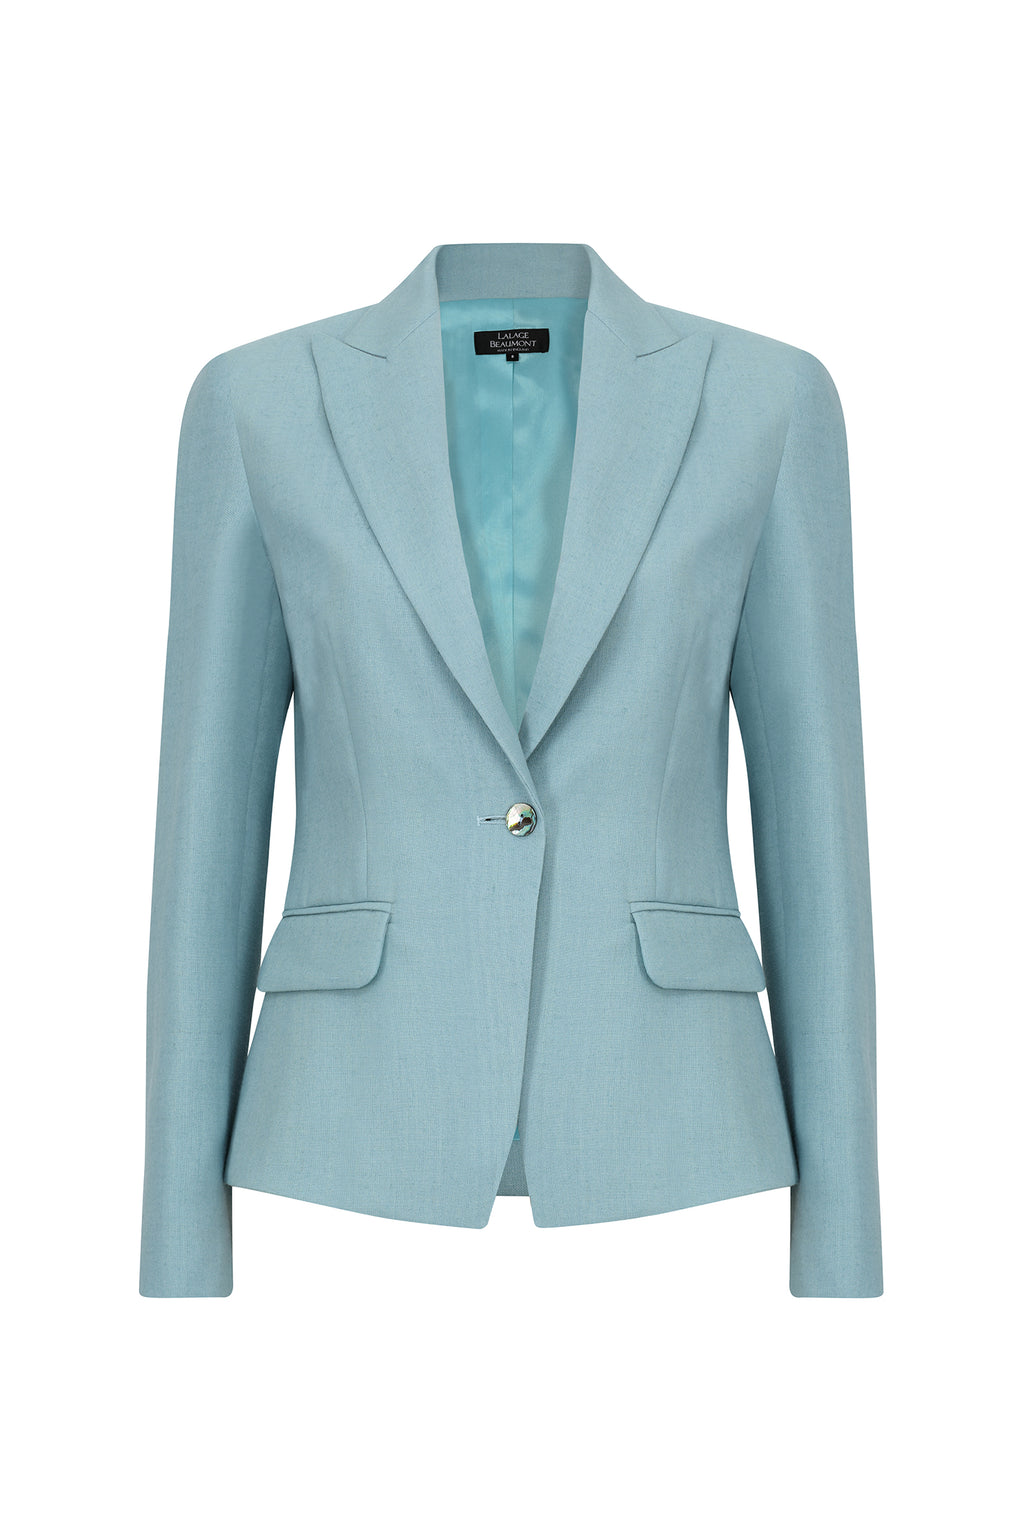 Blazer jacket in sea-green linen mix - Inez